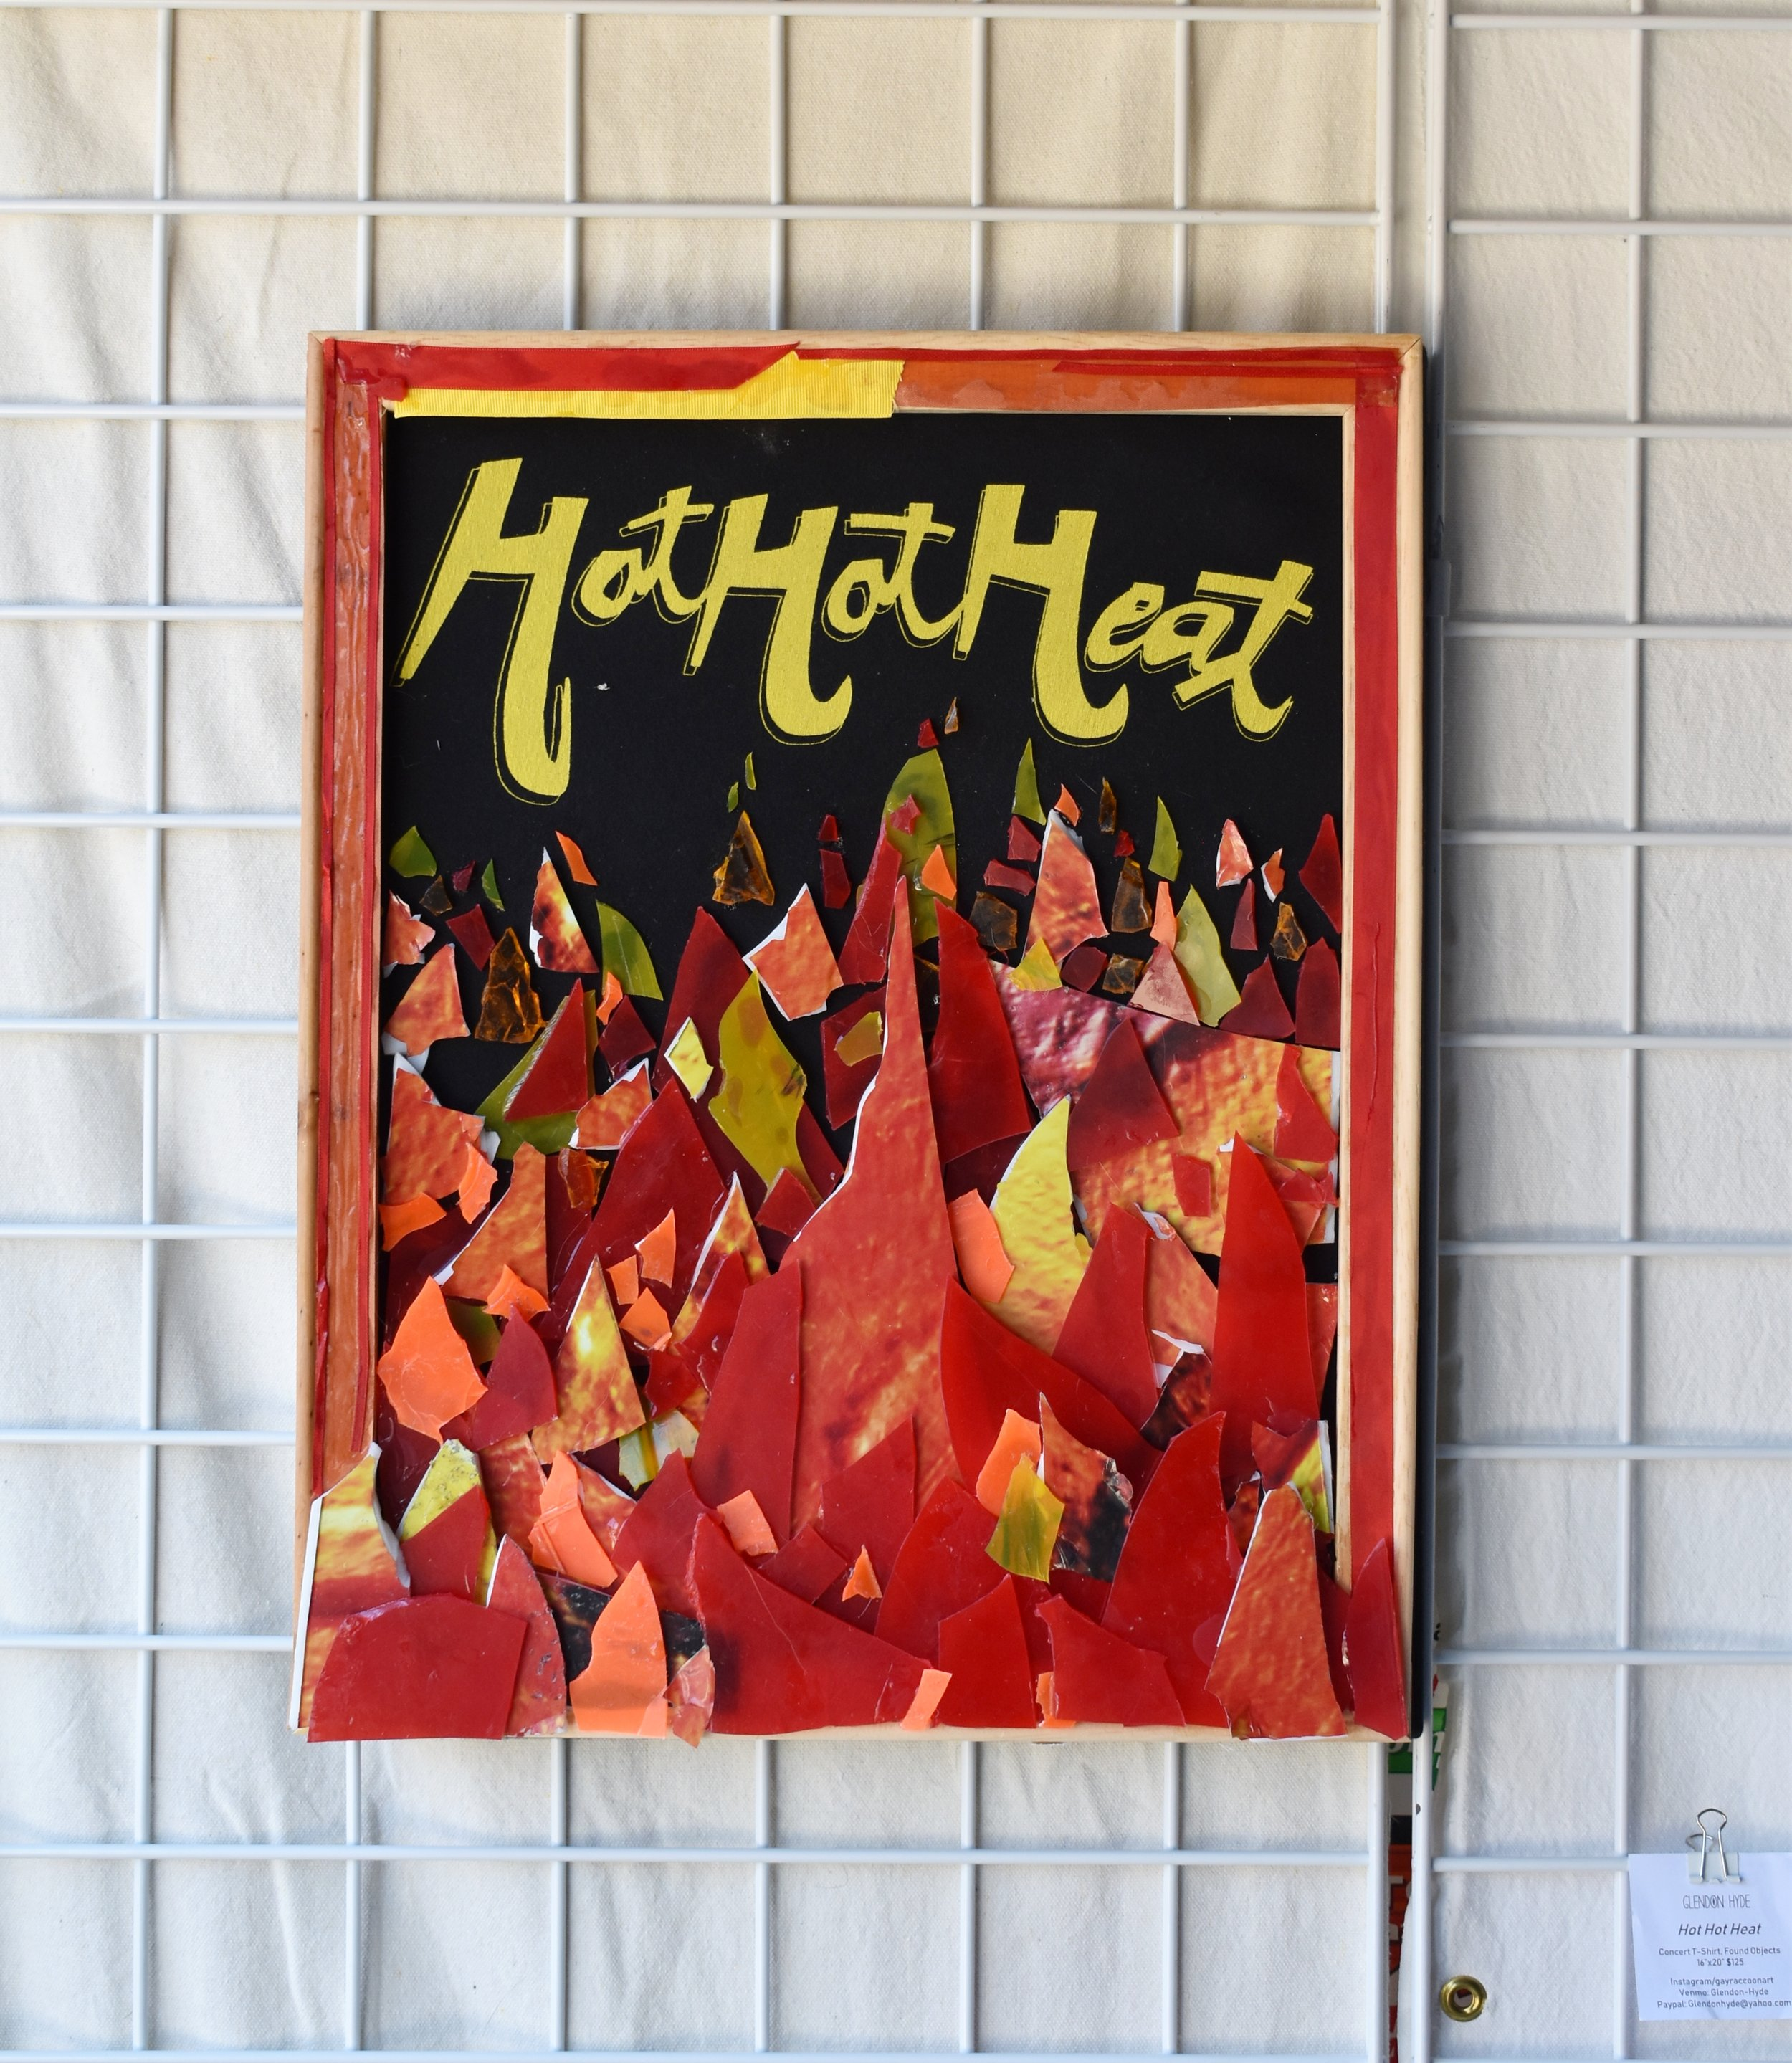 "glendon hyde - Hot Hot HeatConcert T-Shirt, Found Objects16""x20"" $125Instagram"